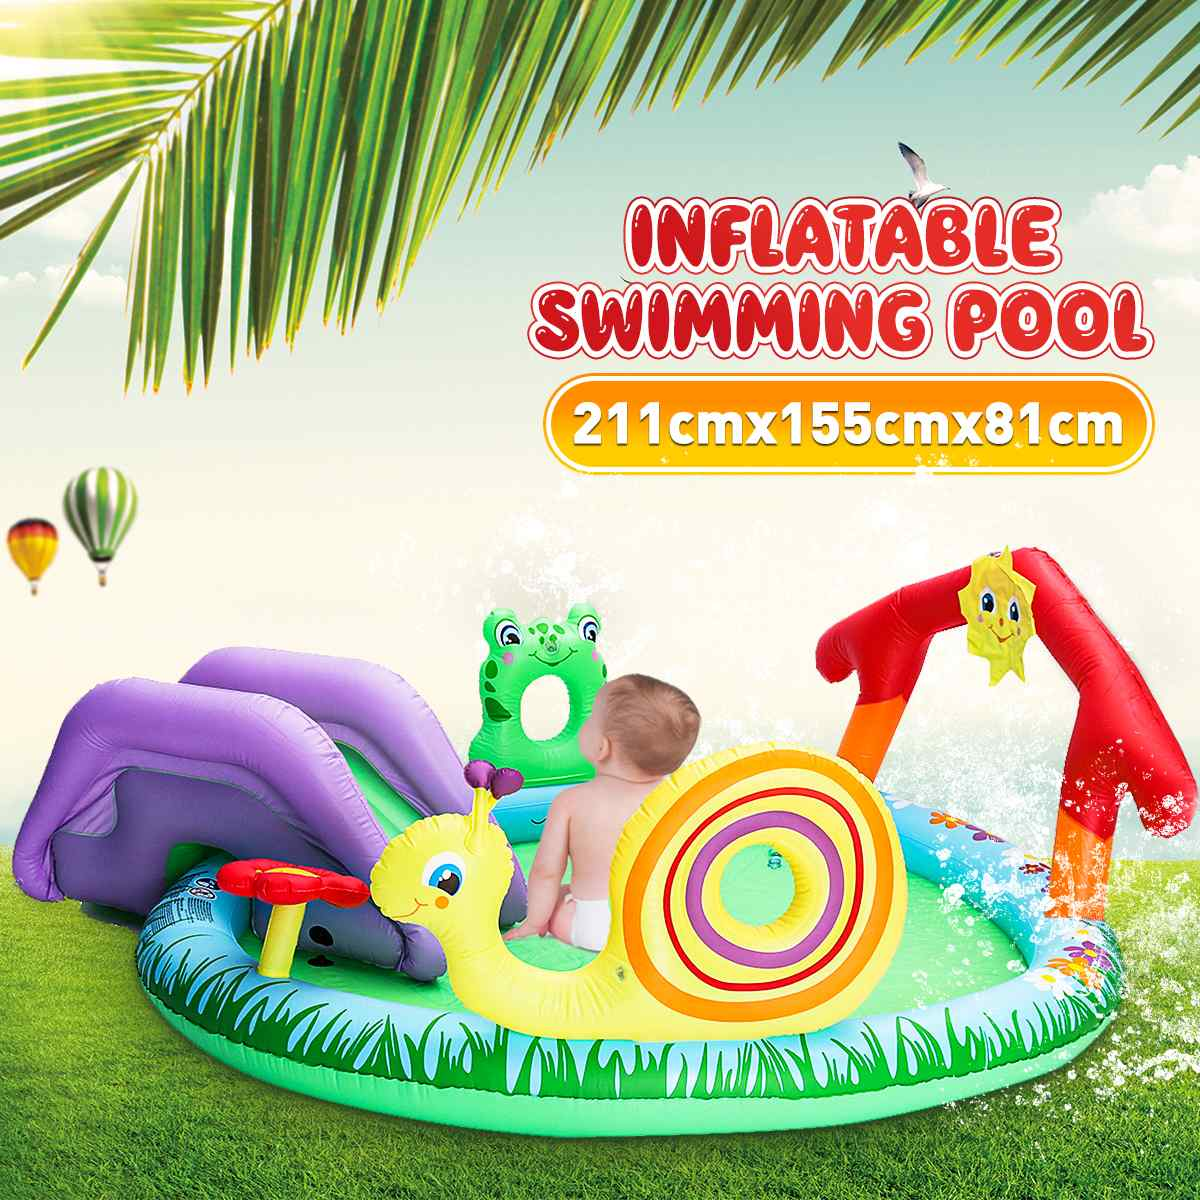 Water Spray Outdoor Garden Fun Toy Pool Surfboard Summer Water Games Toy Inflatable Baby Swimming Paddling Pool Slide Toys